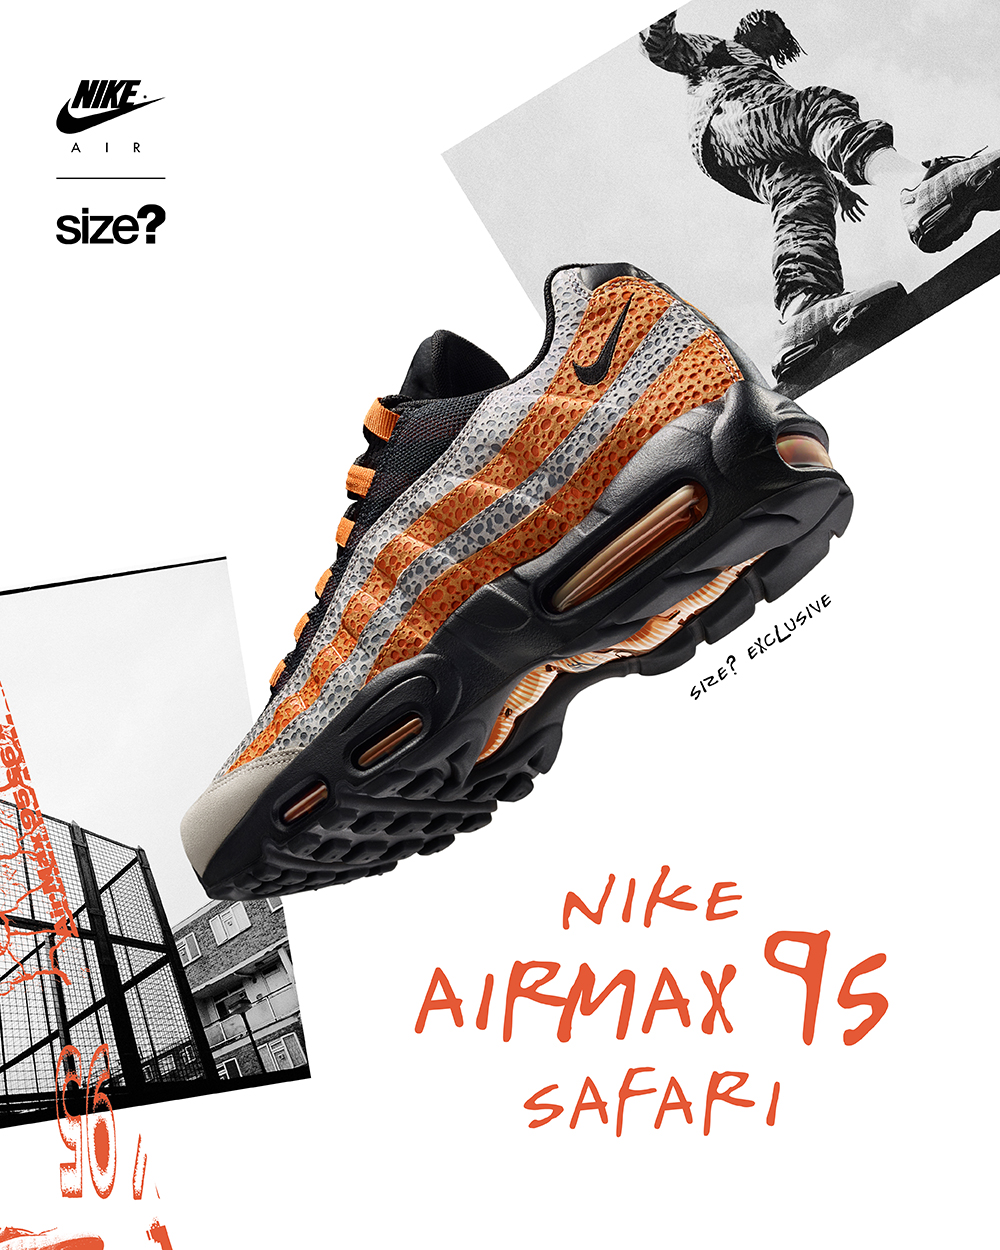 3d814f1edd4c42 size  and Nike Get Wild With the Air Max 95  Safari